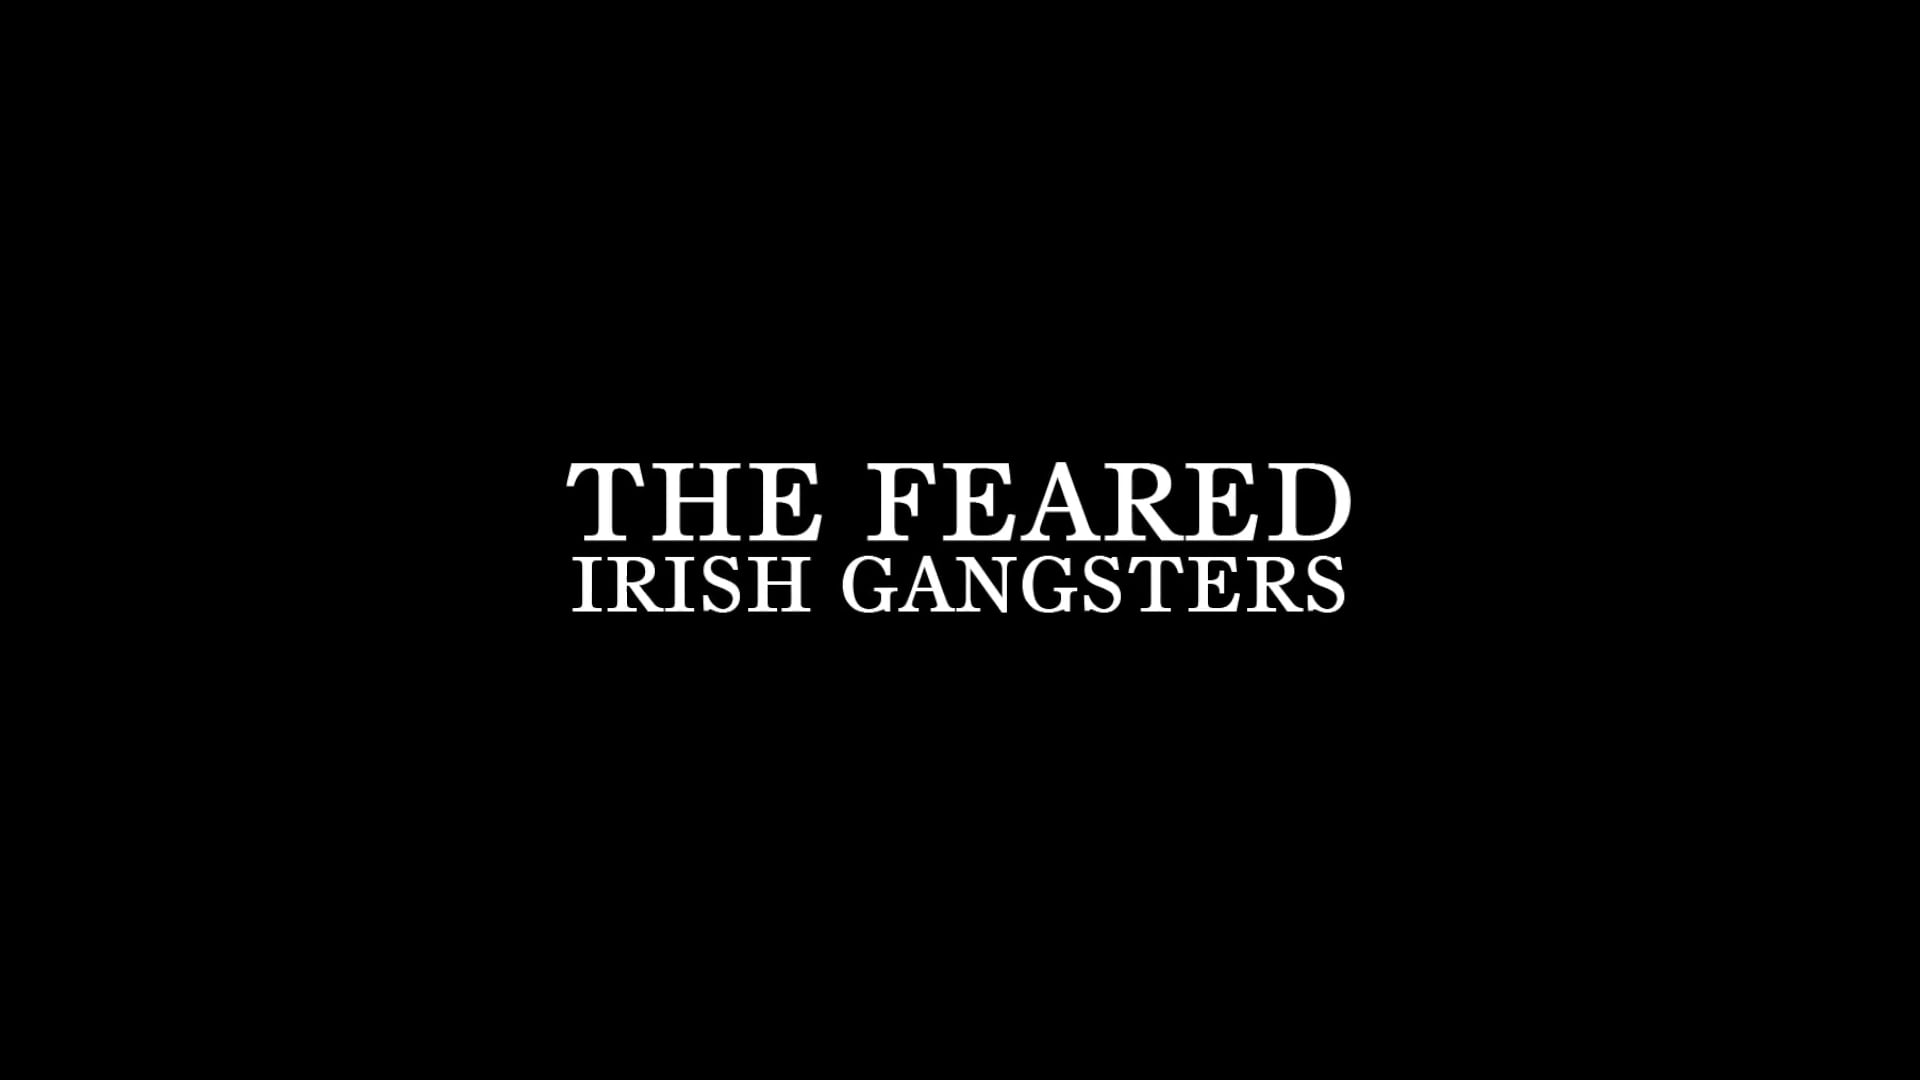 The Feared - Irish Gangsters